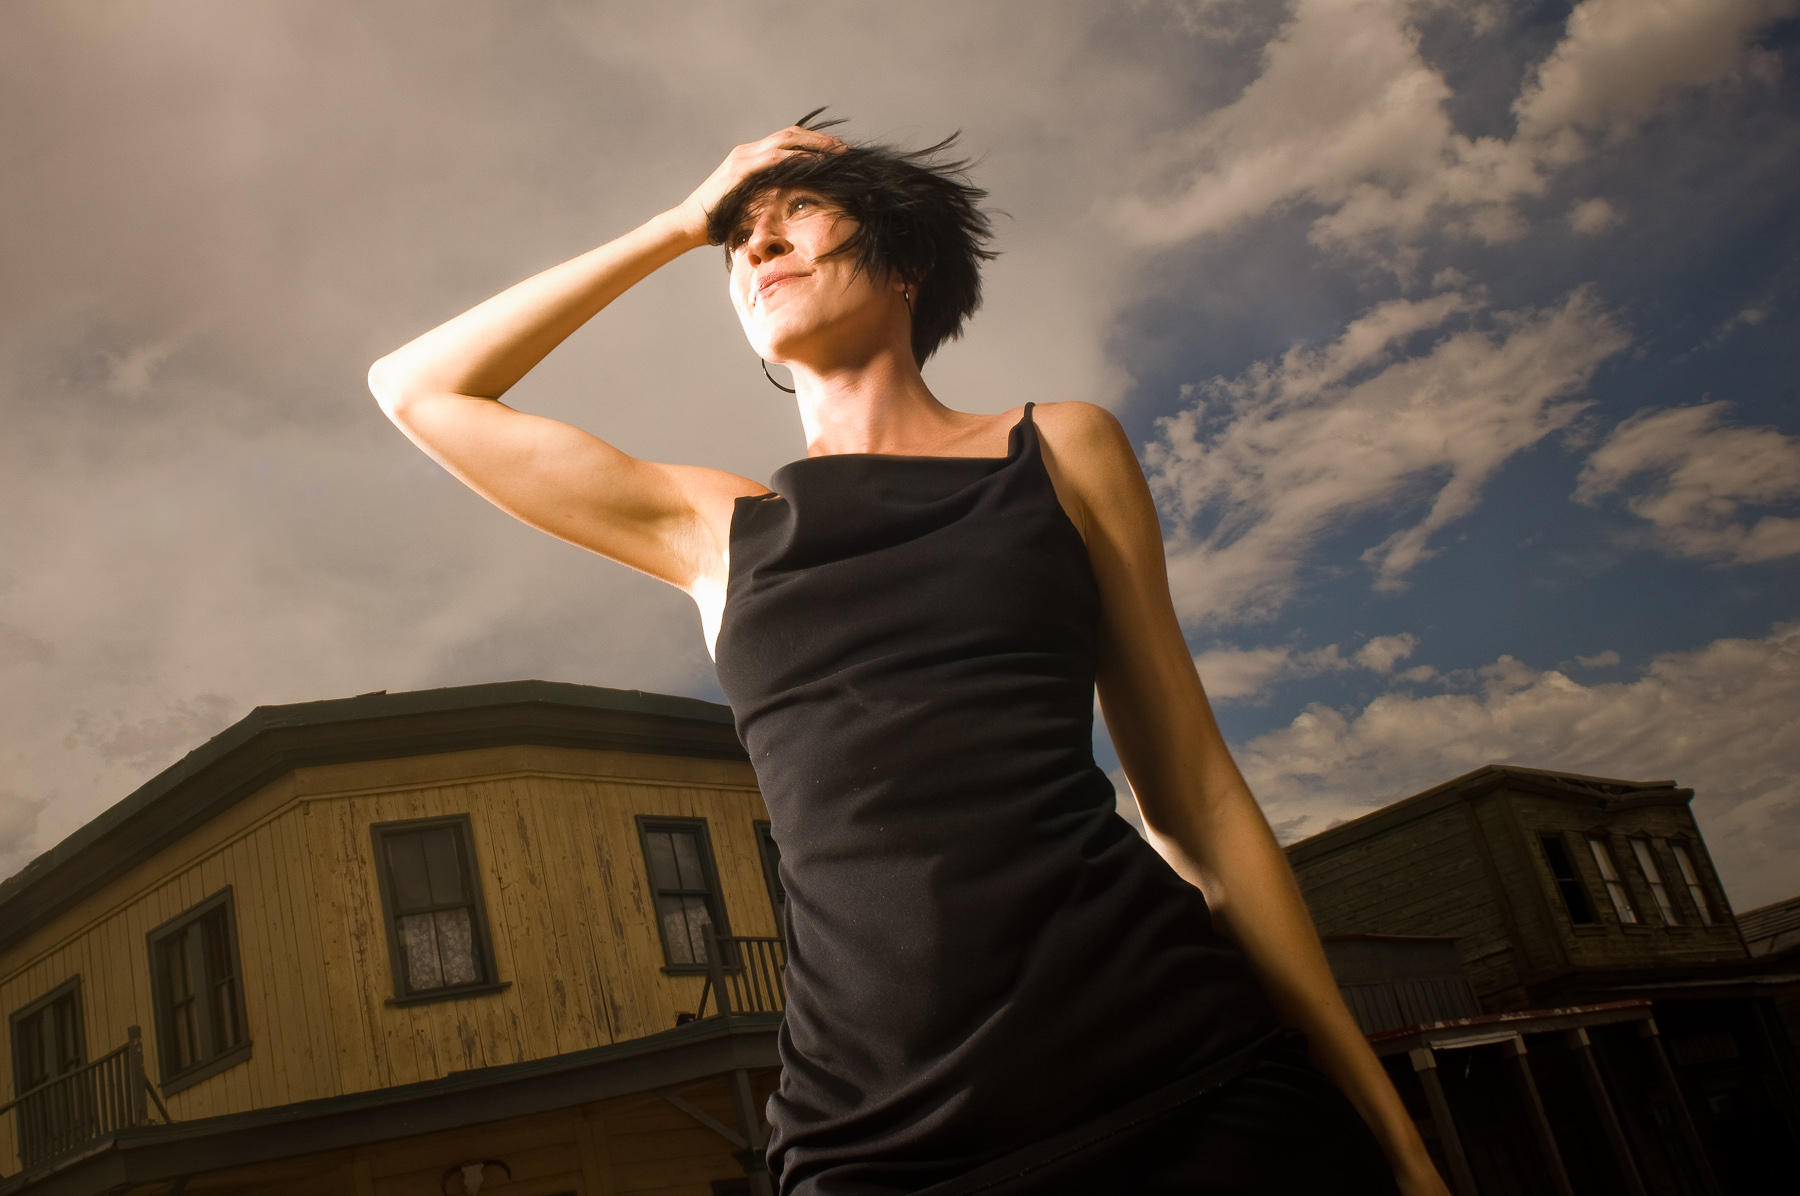 Outdoor fashion portrait of woman in black dress